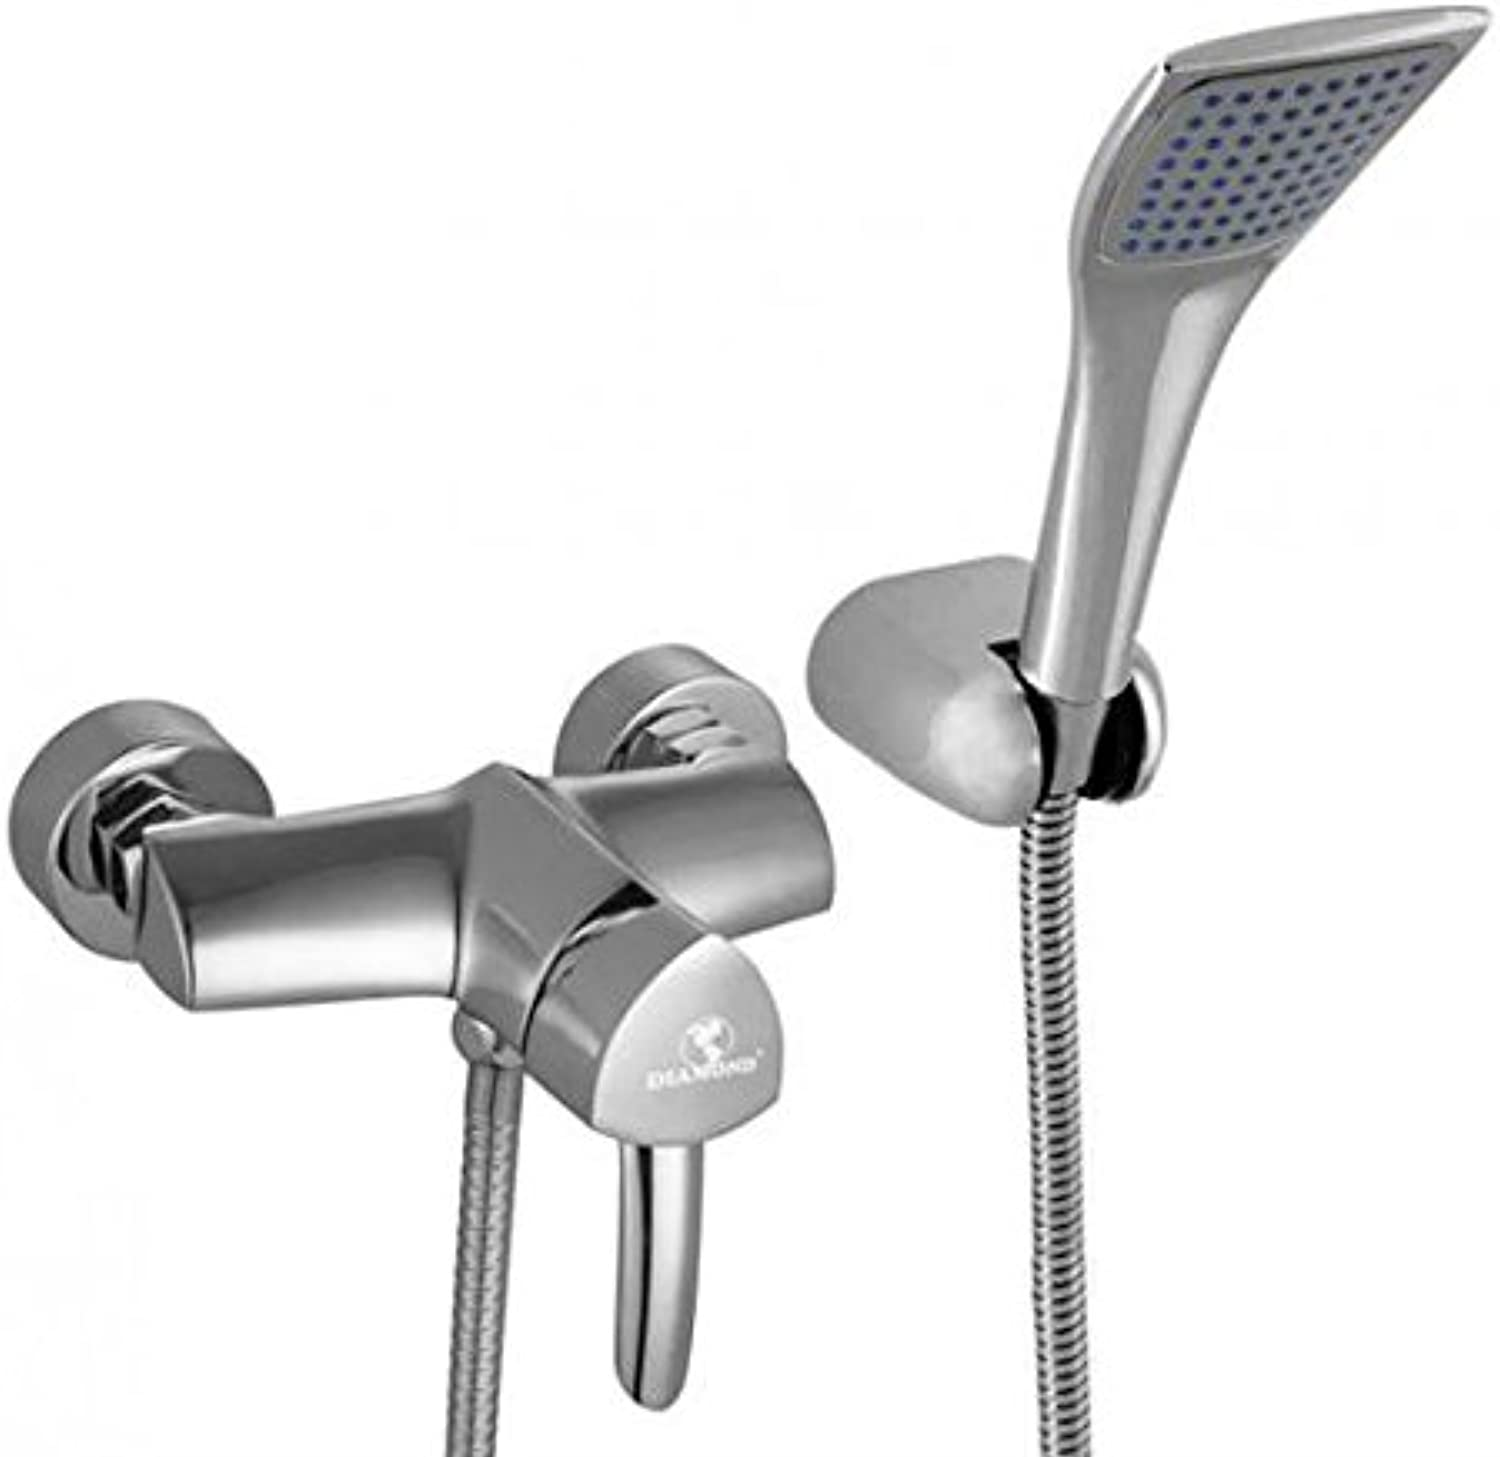 Shower Mixer TENERIFE on the wall